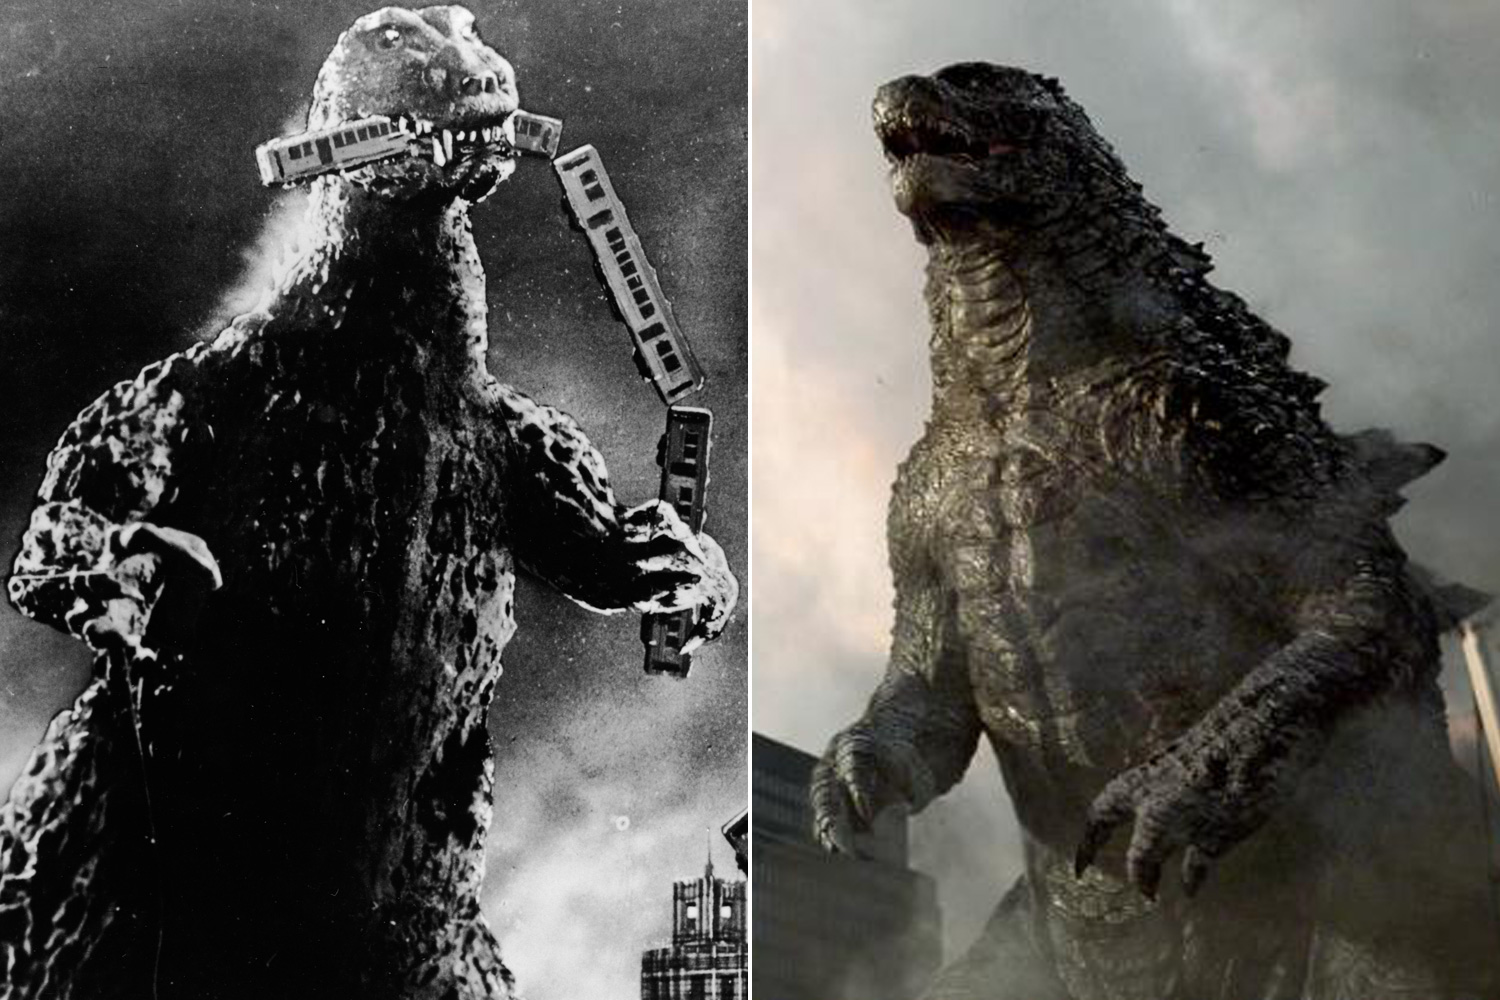 Godzilla, also known as Gojira, was originally produced by the Japanese studio Toho in its eponymous 1954 film. It was re-imagined in 1998 by director Roland Emmerich for American audiences, before being rebooted again in 2014 by Gareth Edwards.